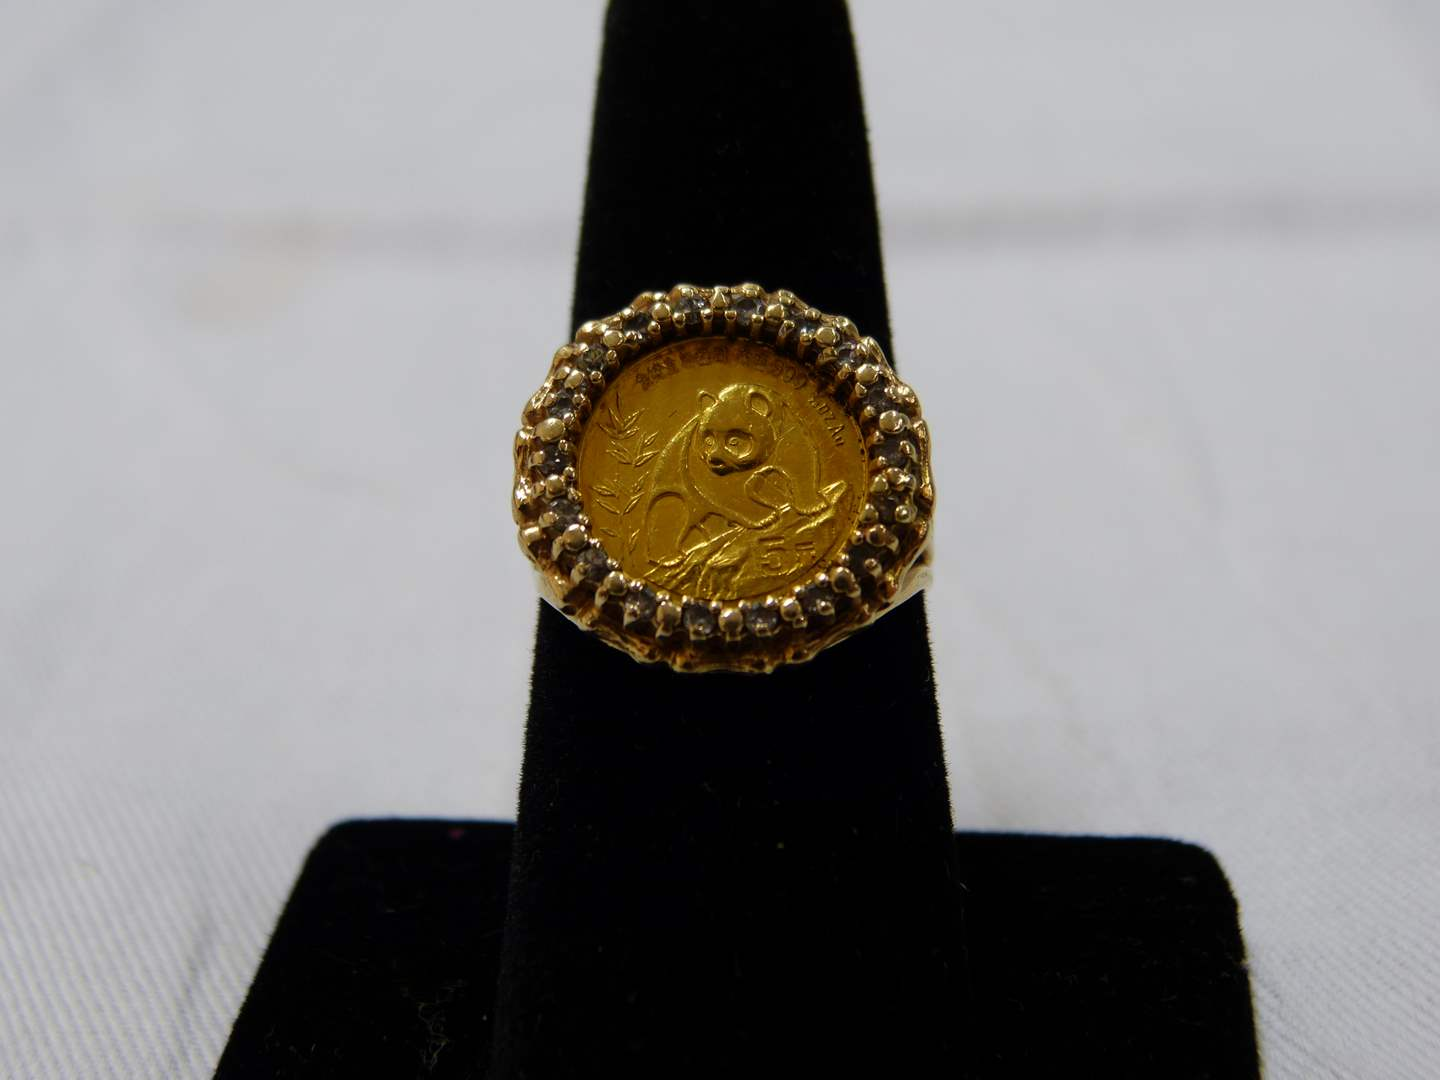 Lot # 53  HOLY PANDA 1/20 OZ .999 purity 1990 GOLD Panda in ring Size 8 5.54 grams (main image)